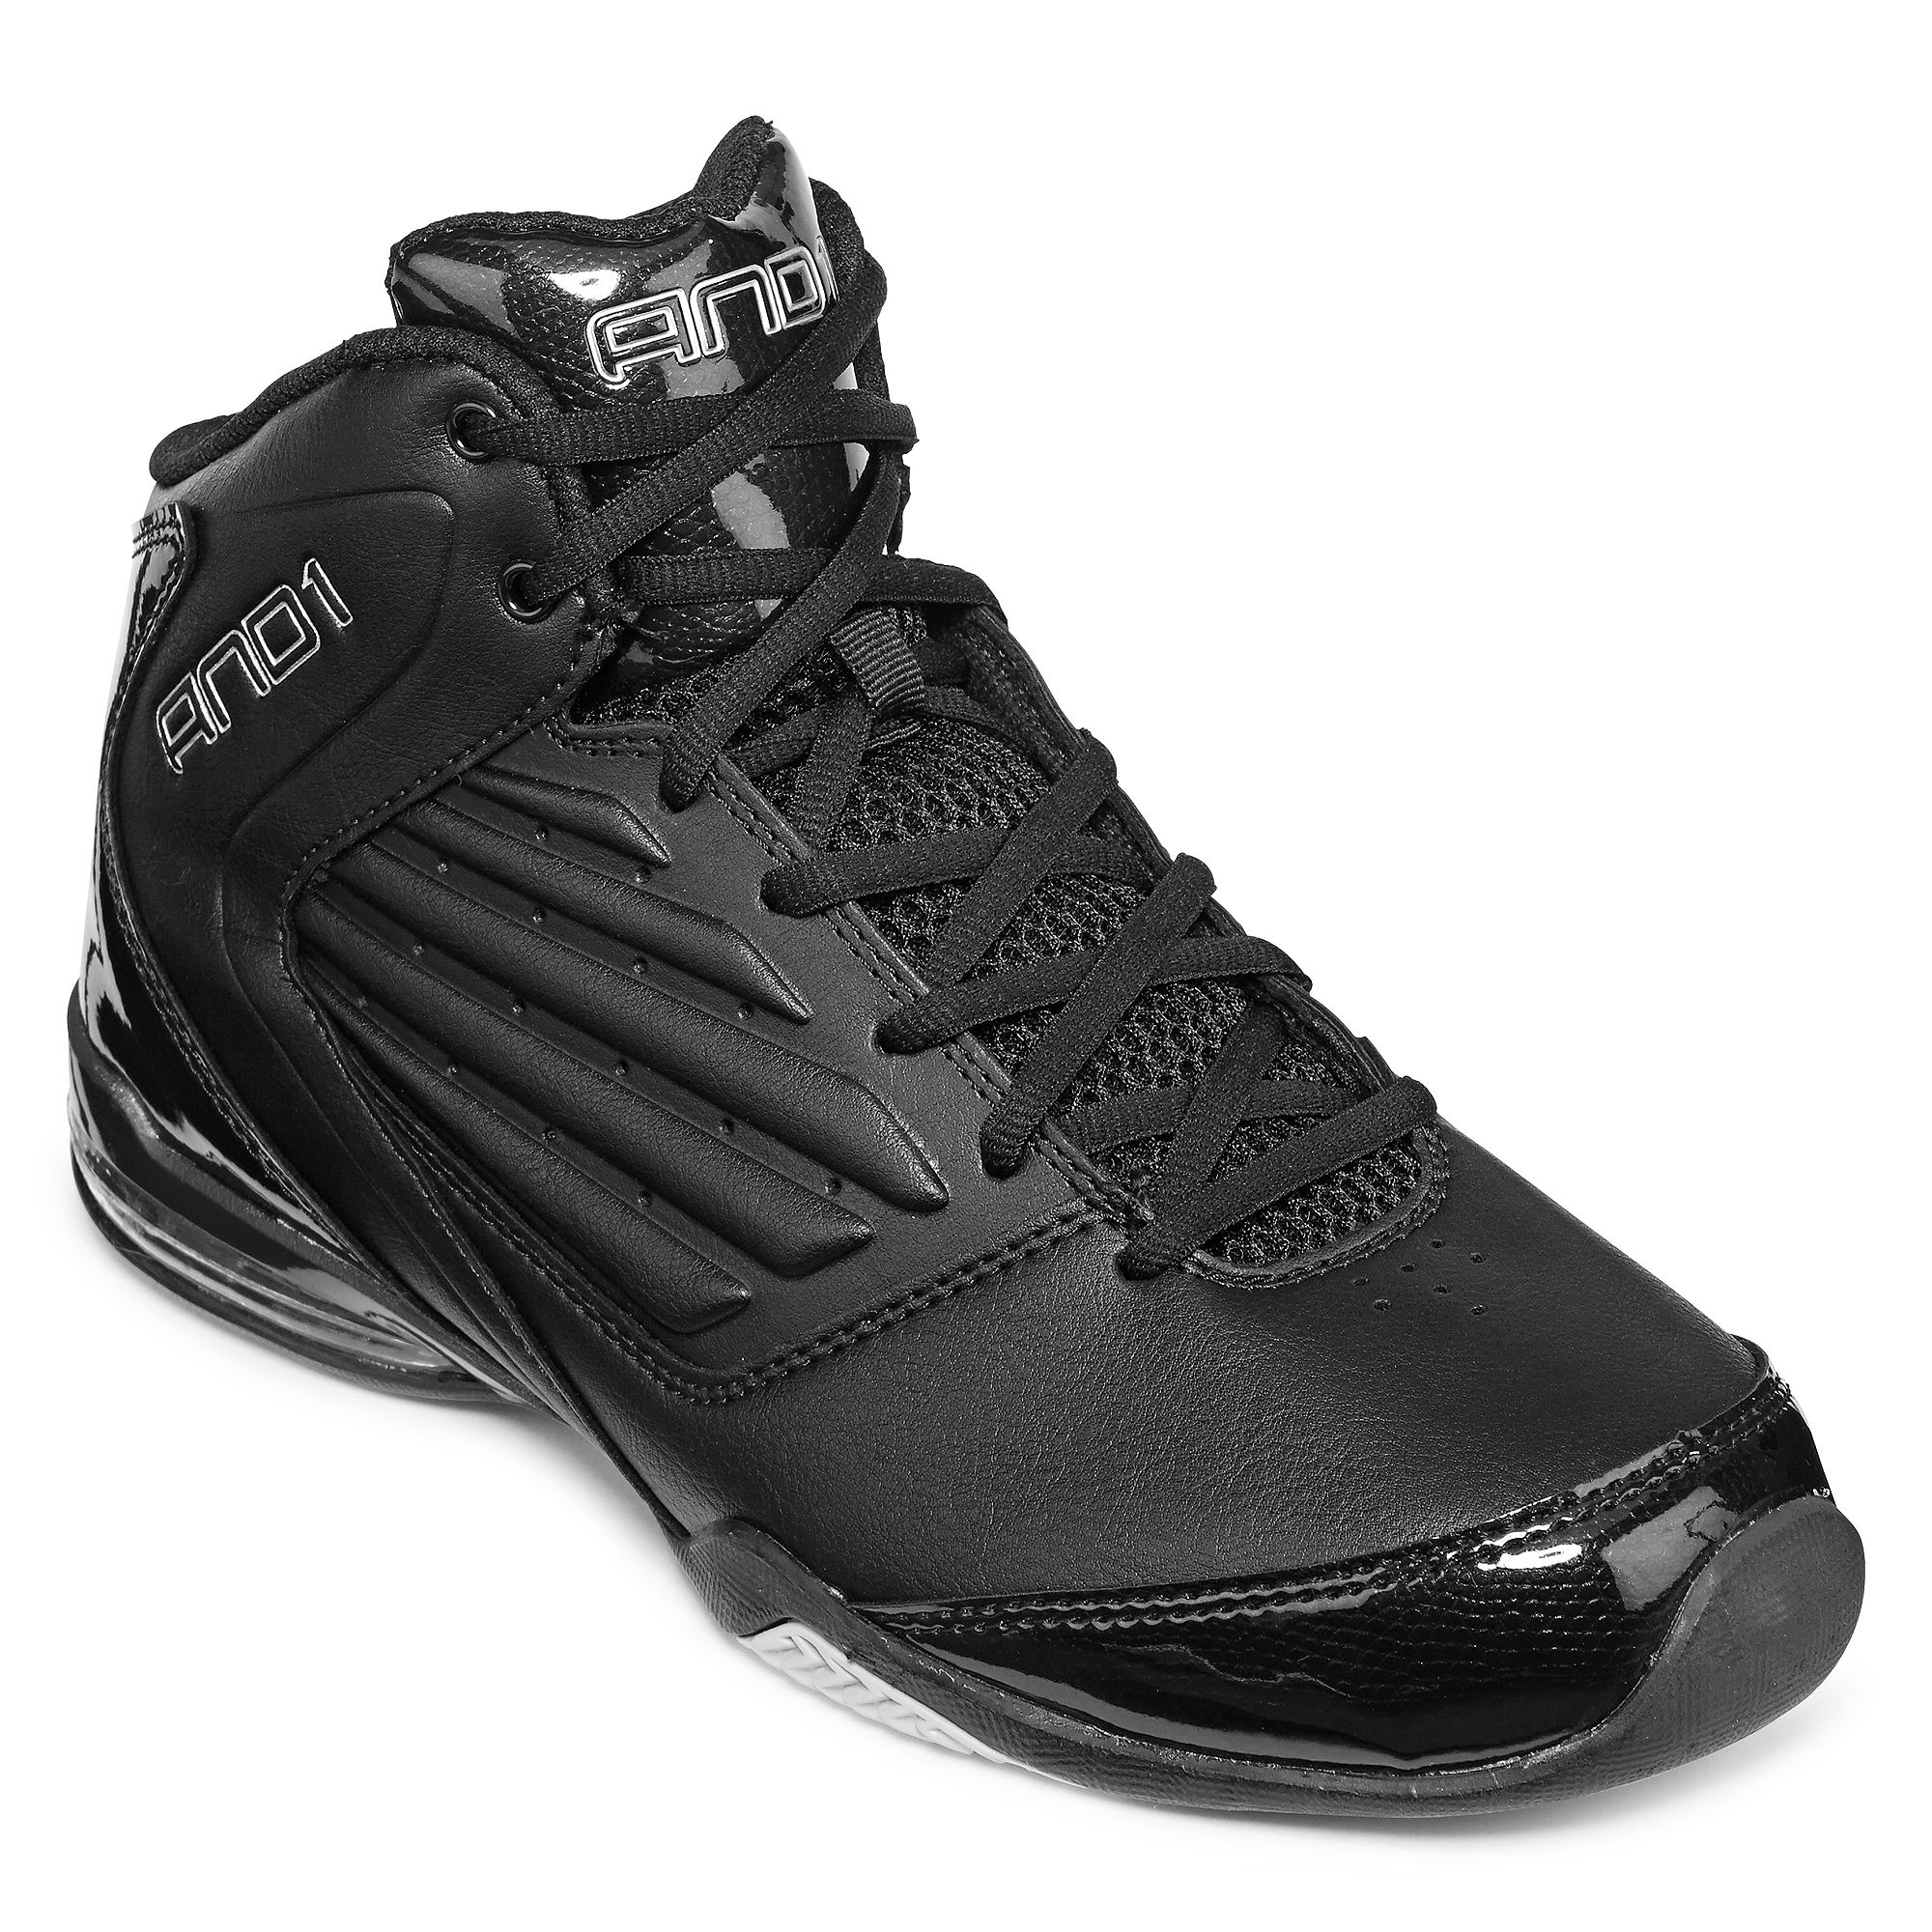 AND 1 Master 2 Mens Mid Basketball Shoes